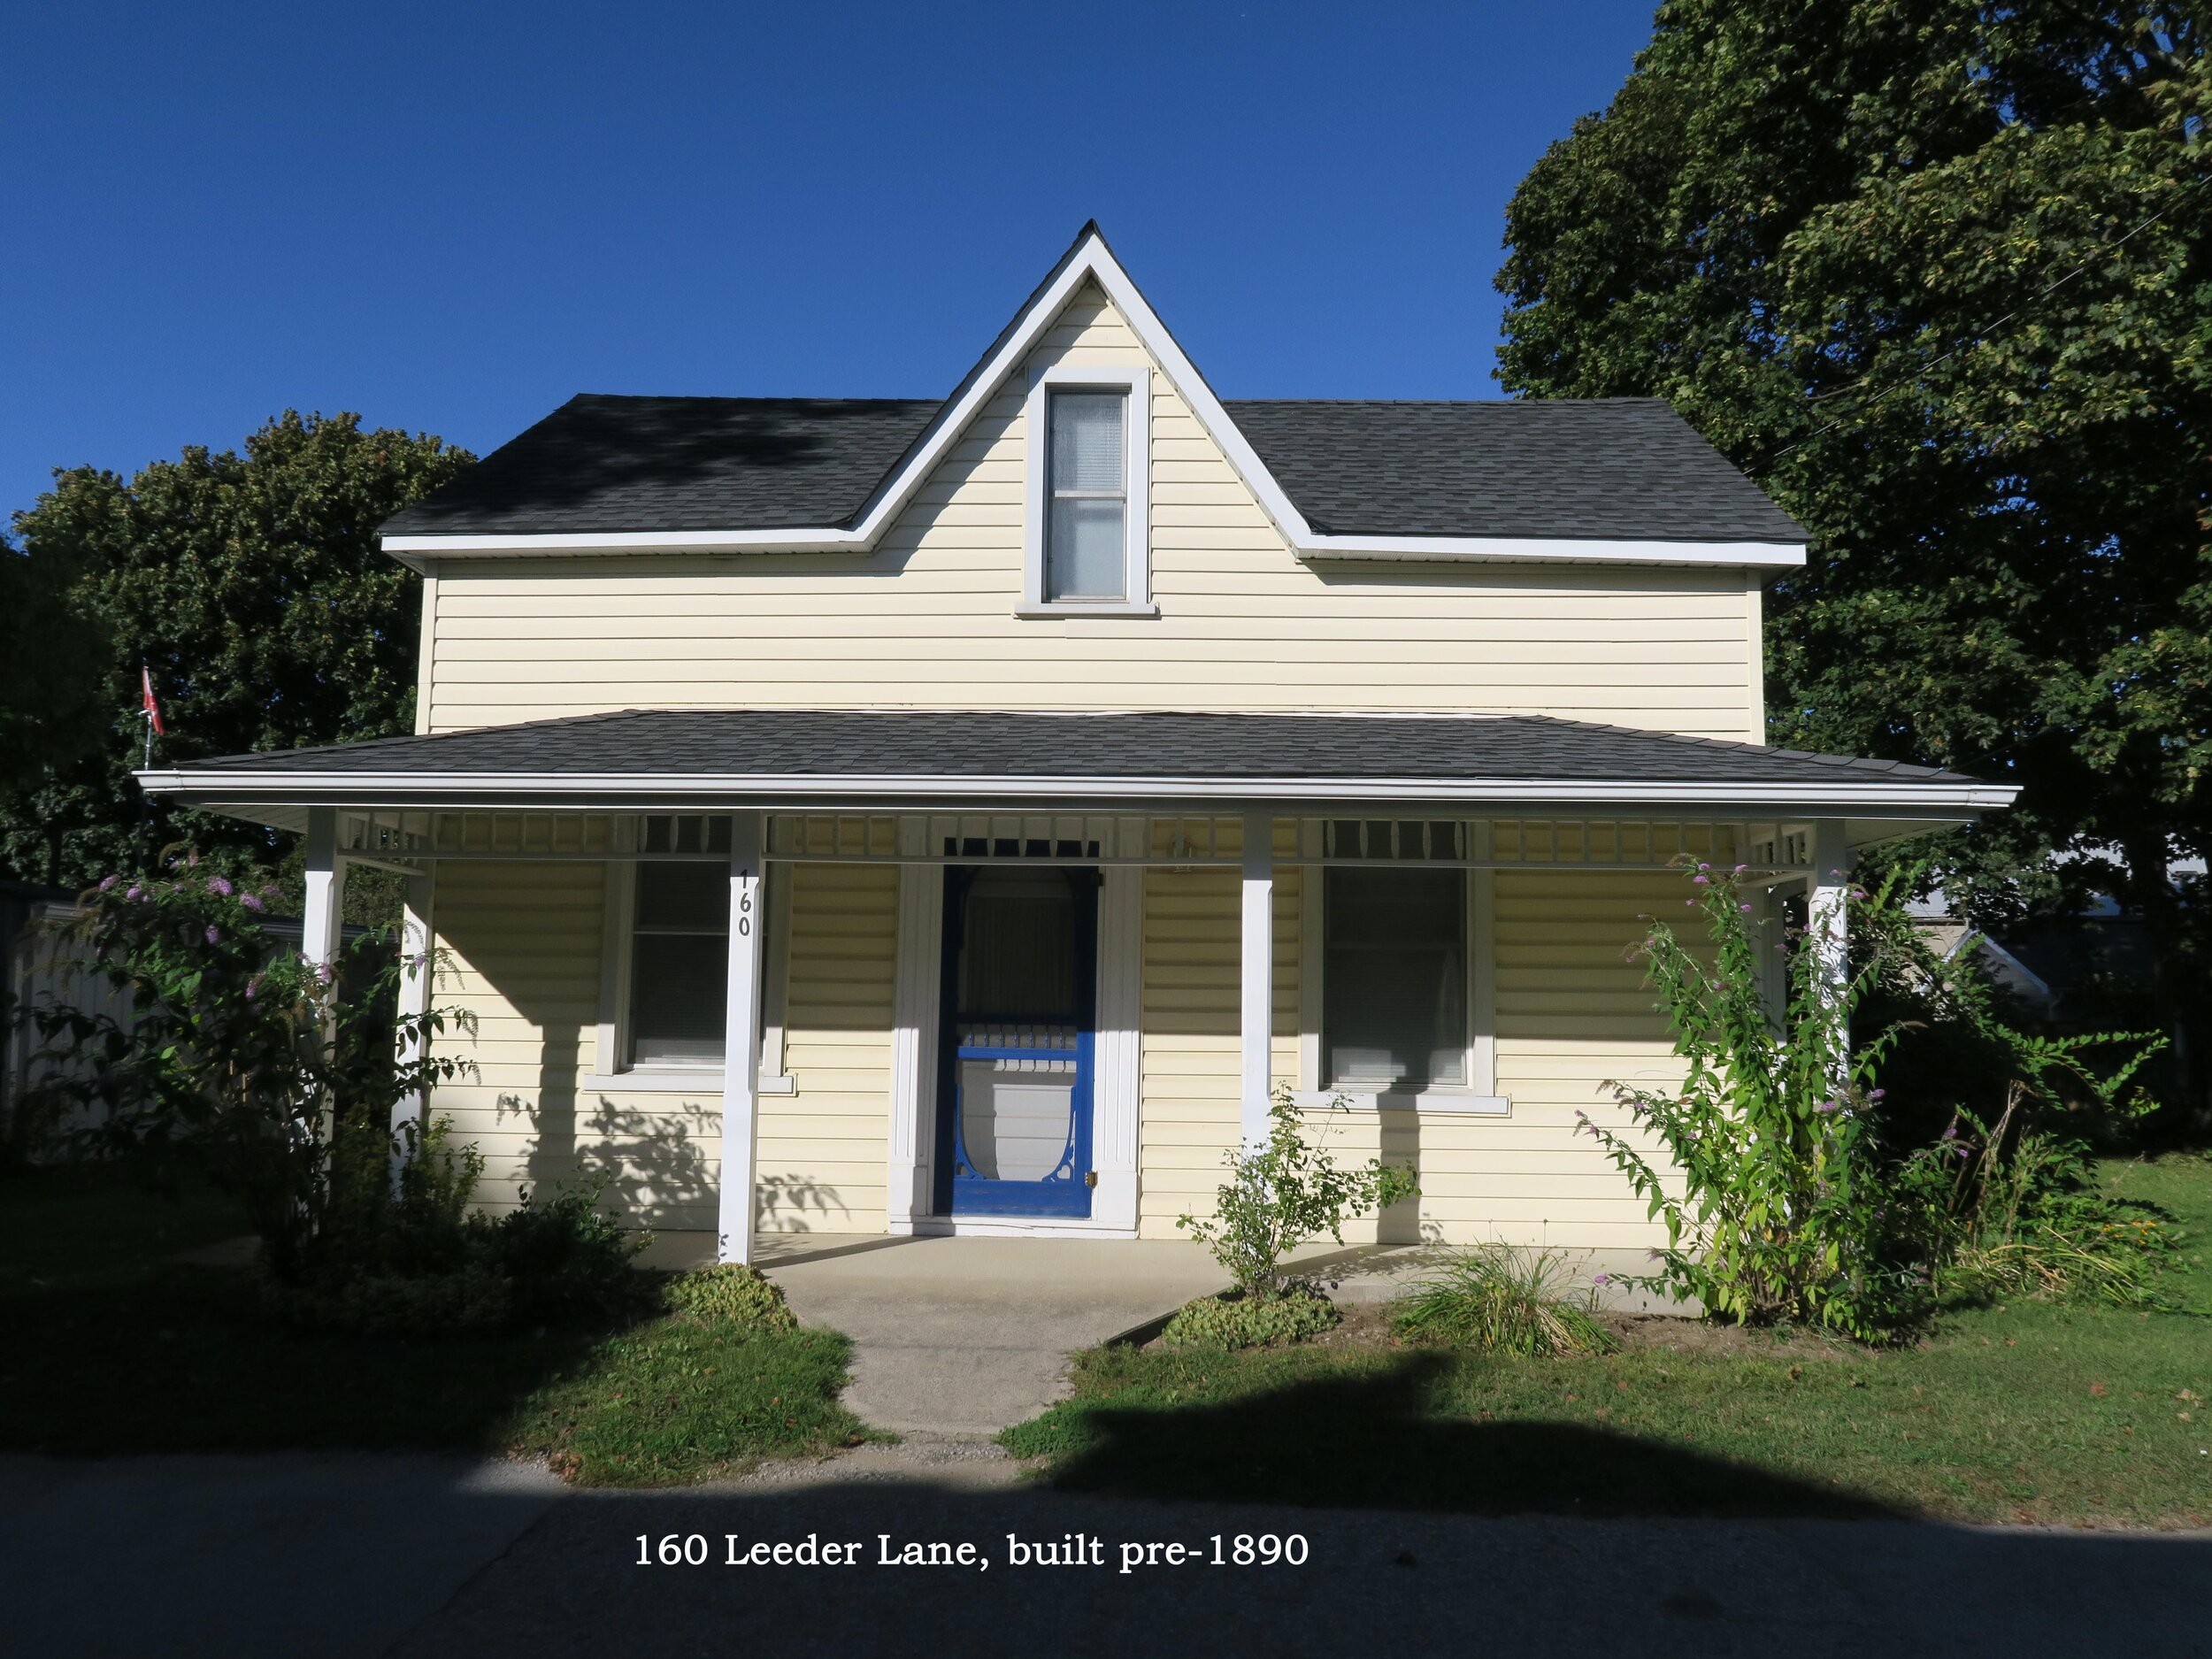 160 Leeder Lane is visible on the 1890 Fire Insurance map, suggesting it was built before 1890.